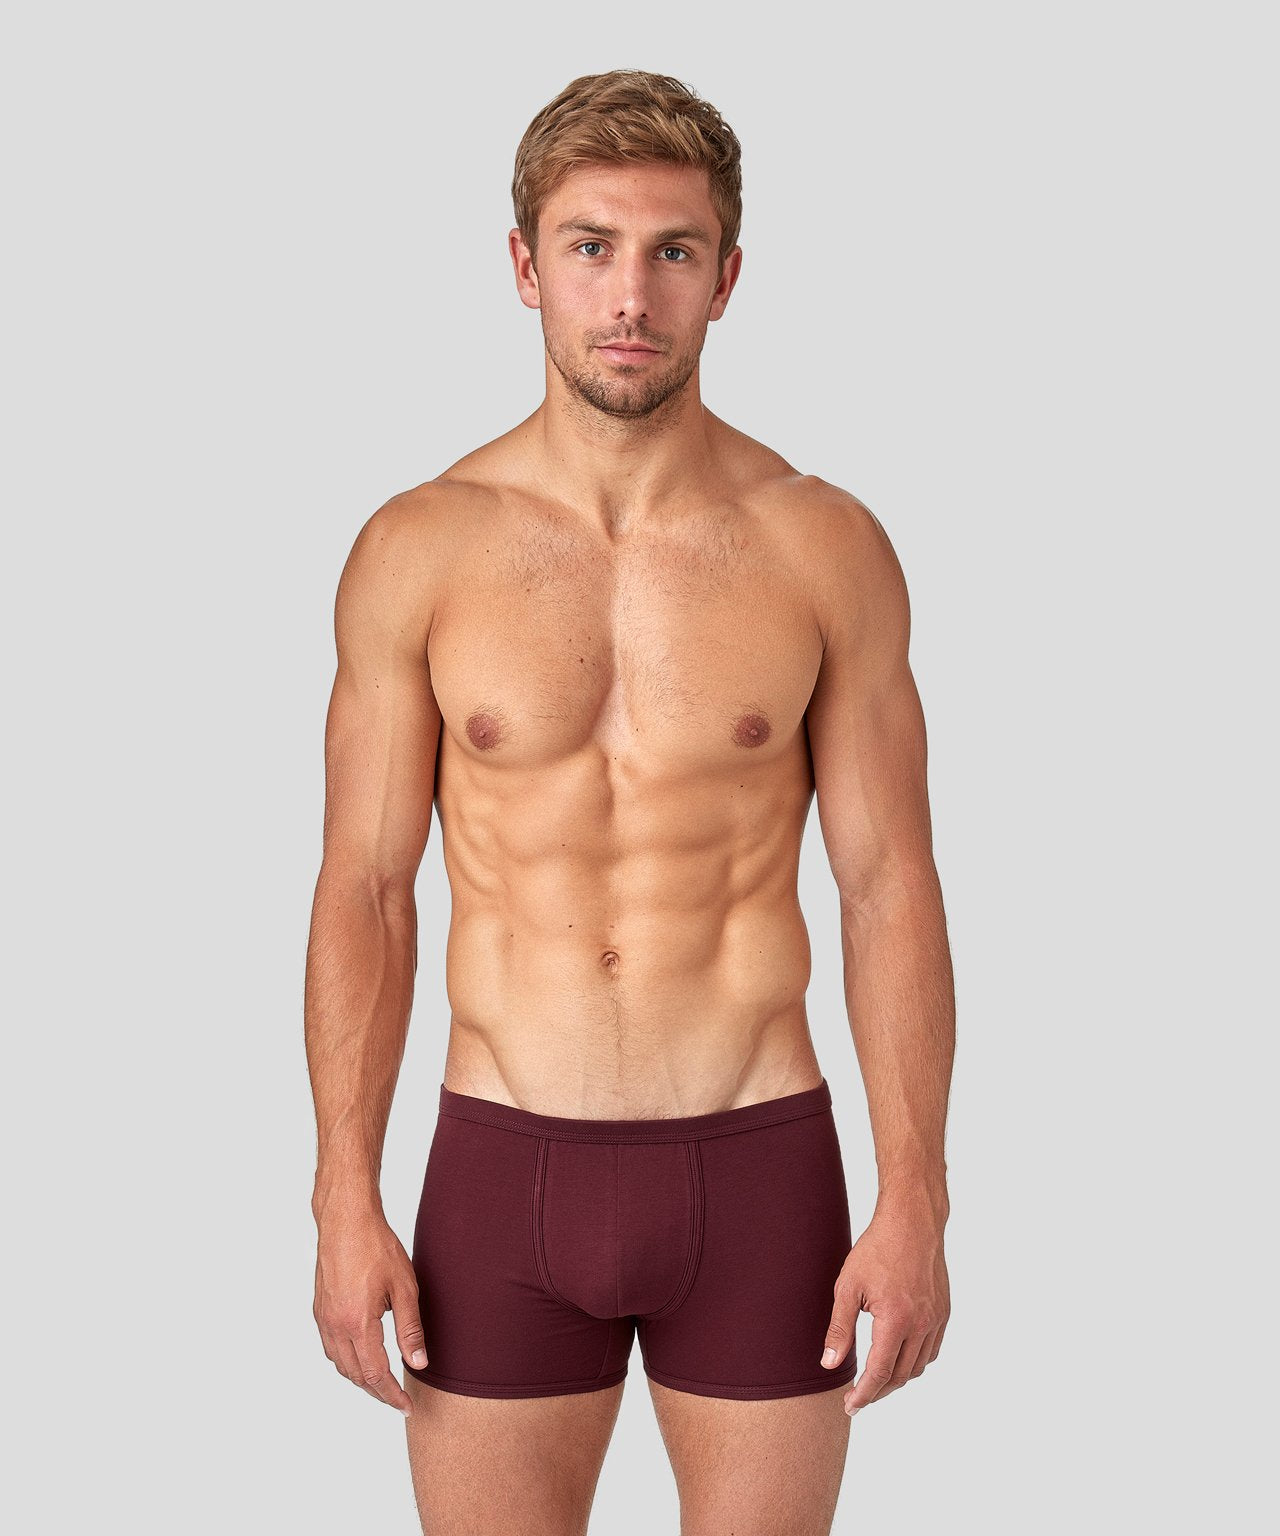 747 Boxer Briefs Alpine Kit - white